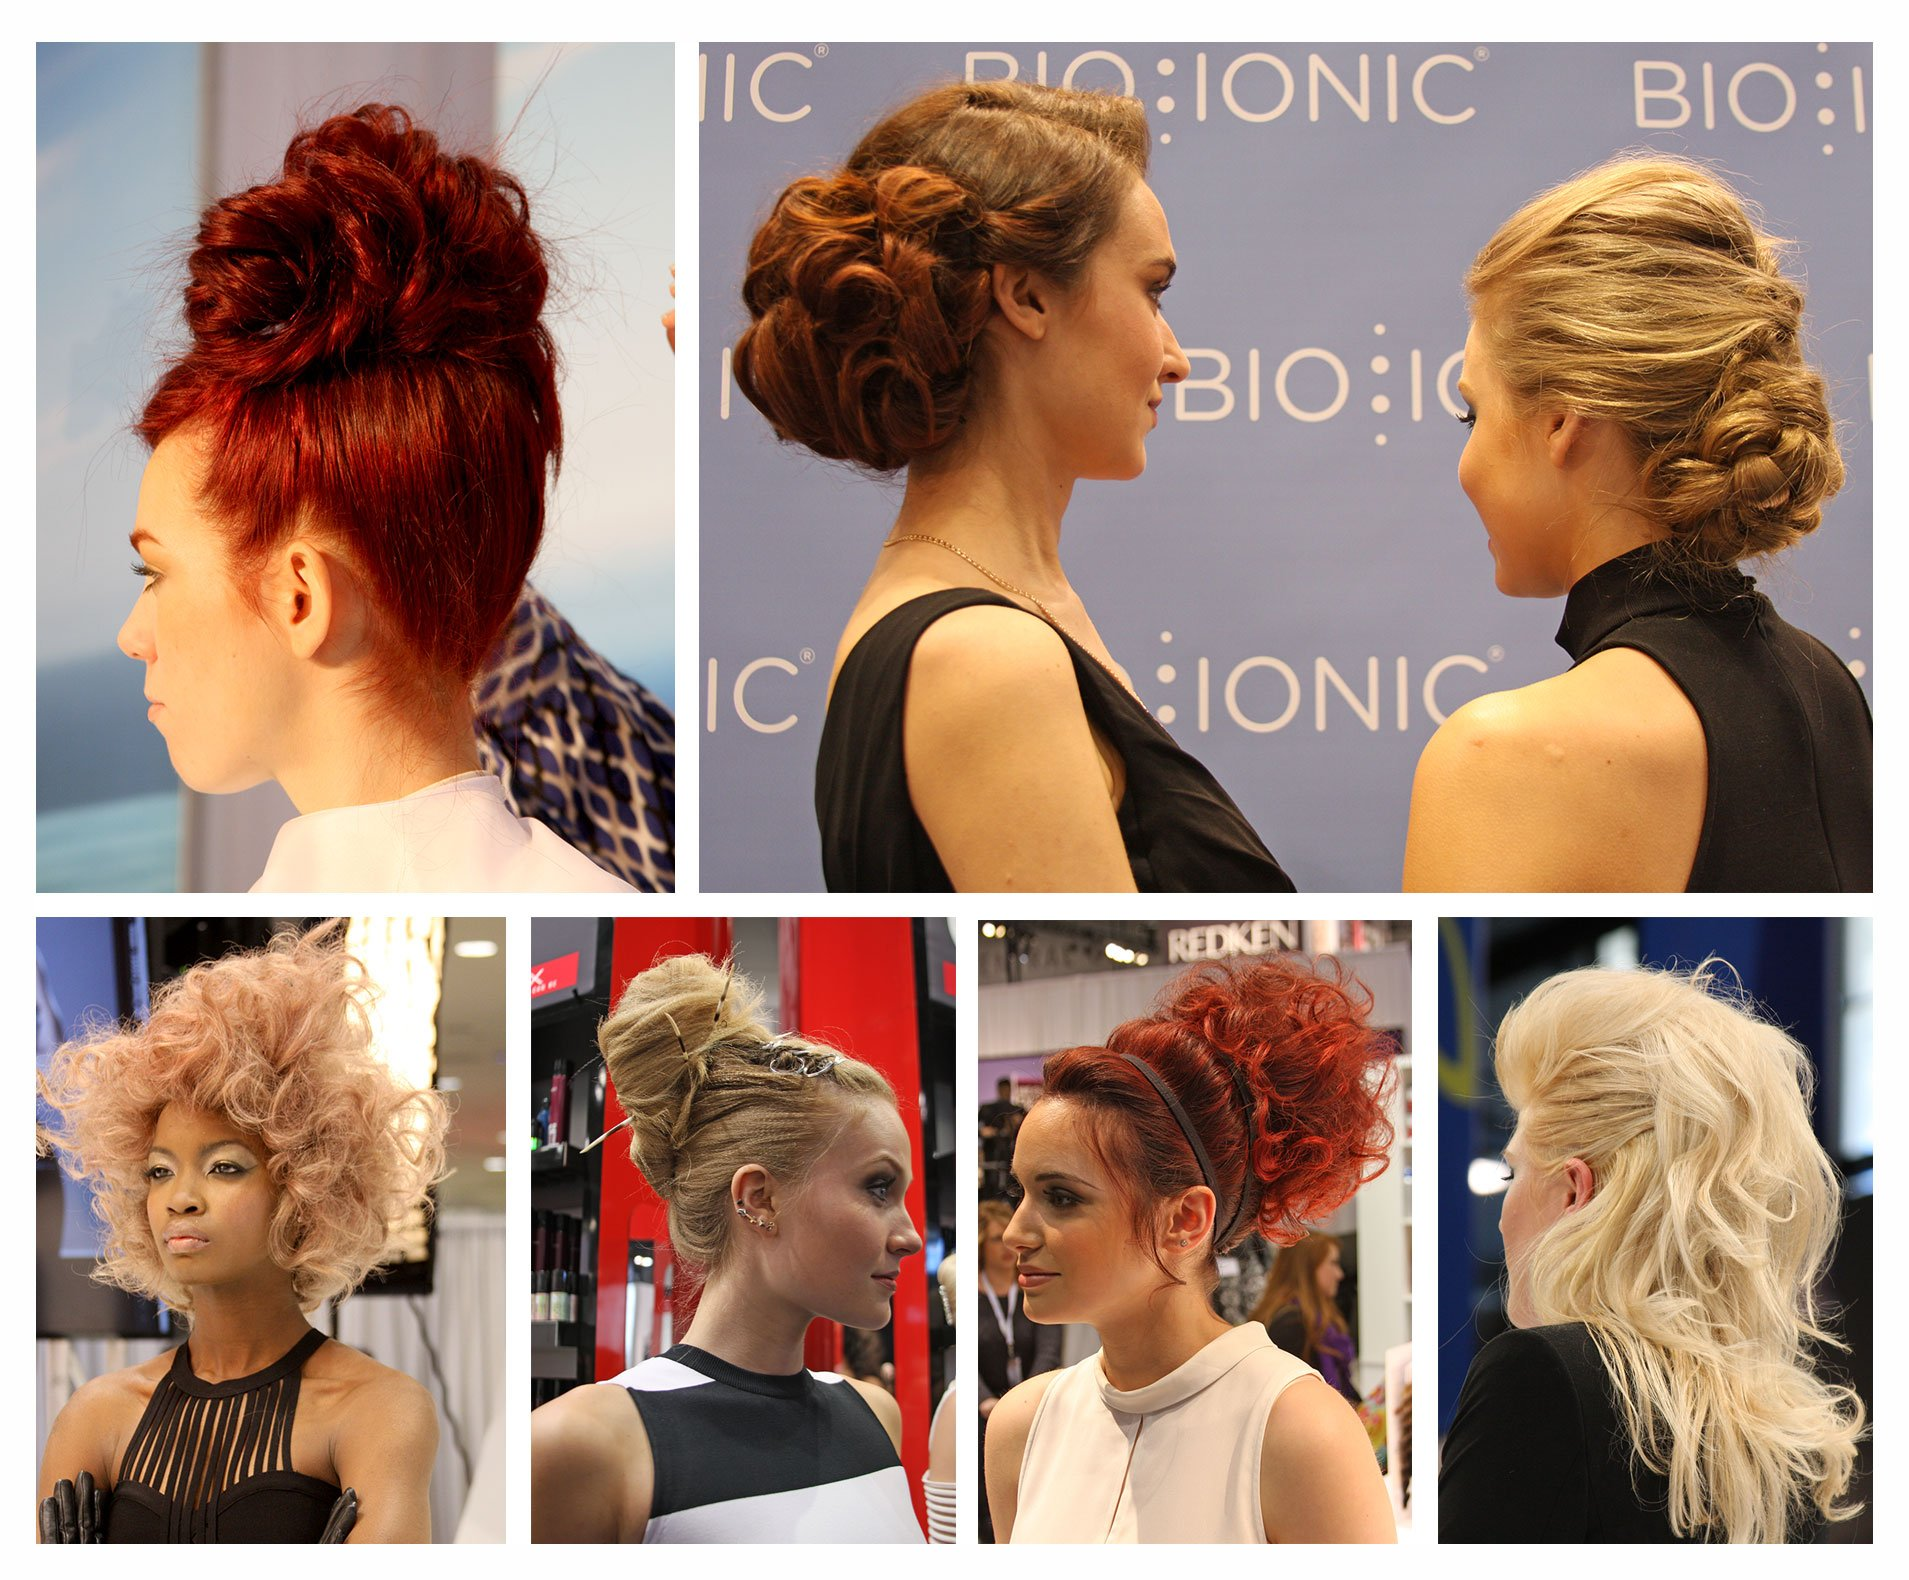 14 Chic and Stylish Upstyles From America's Beauty Show 2015